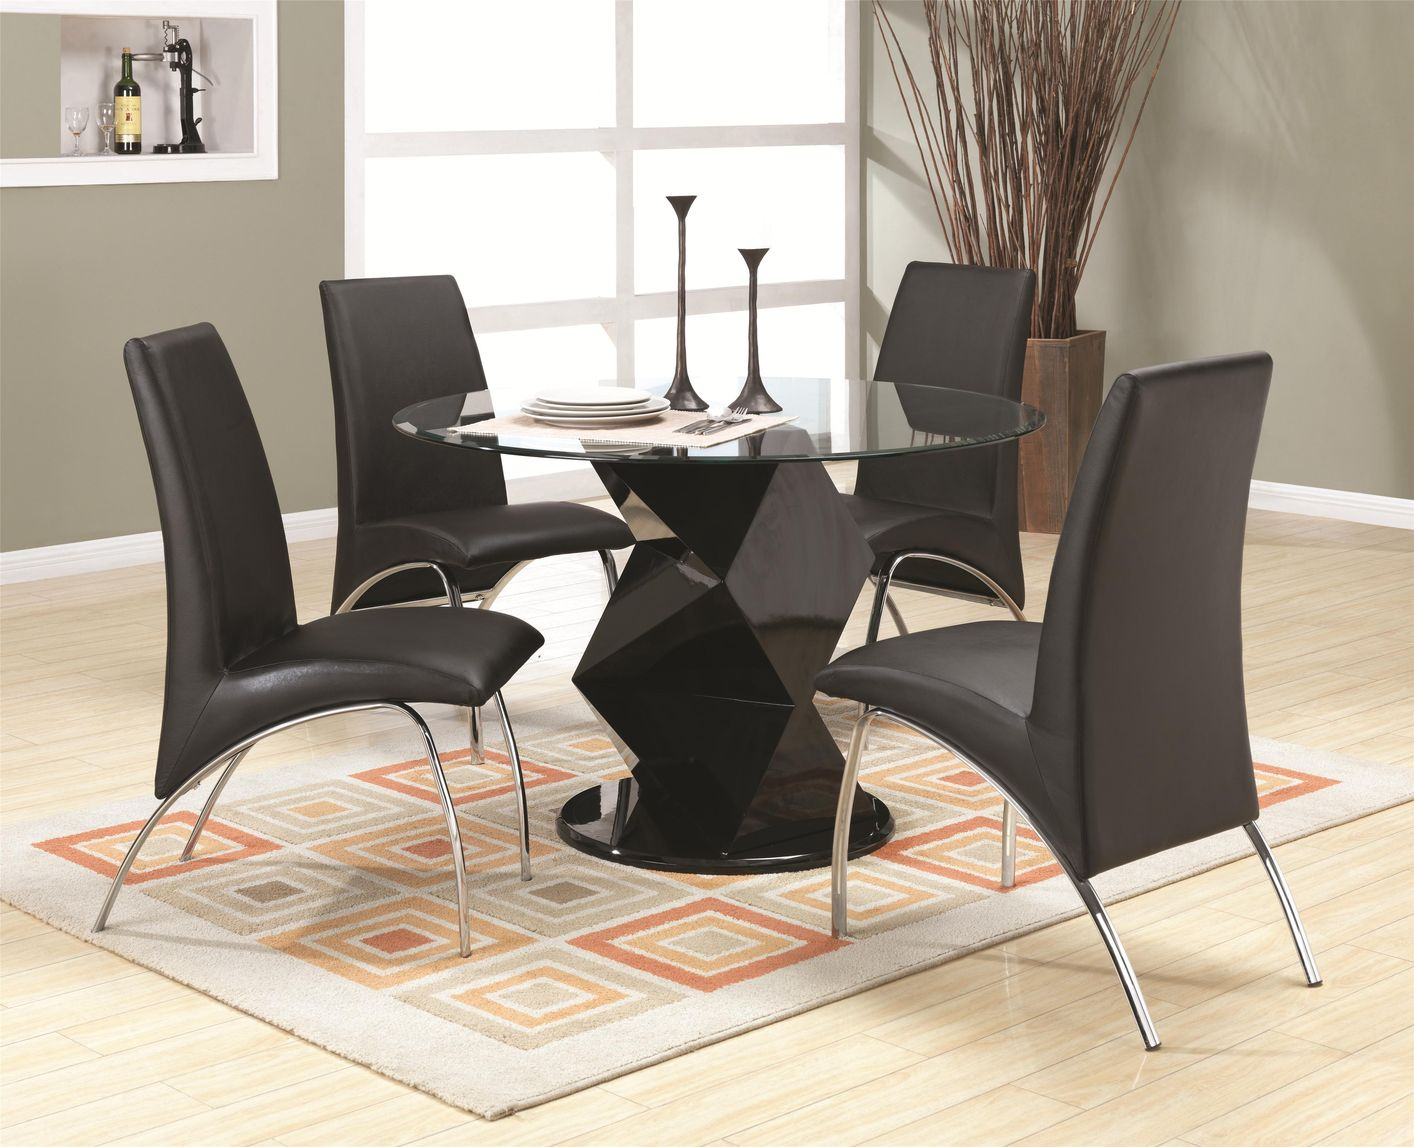 Black wood dining table set - Ophelia Black Wood And Glass Dining Table Set